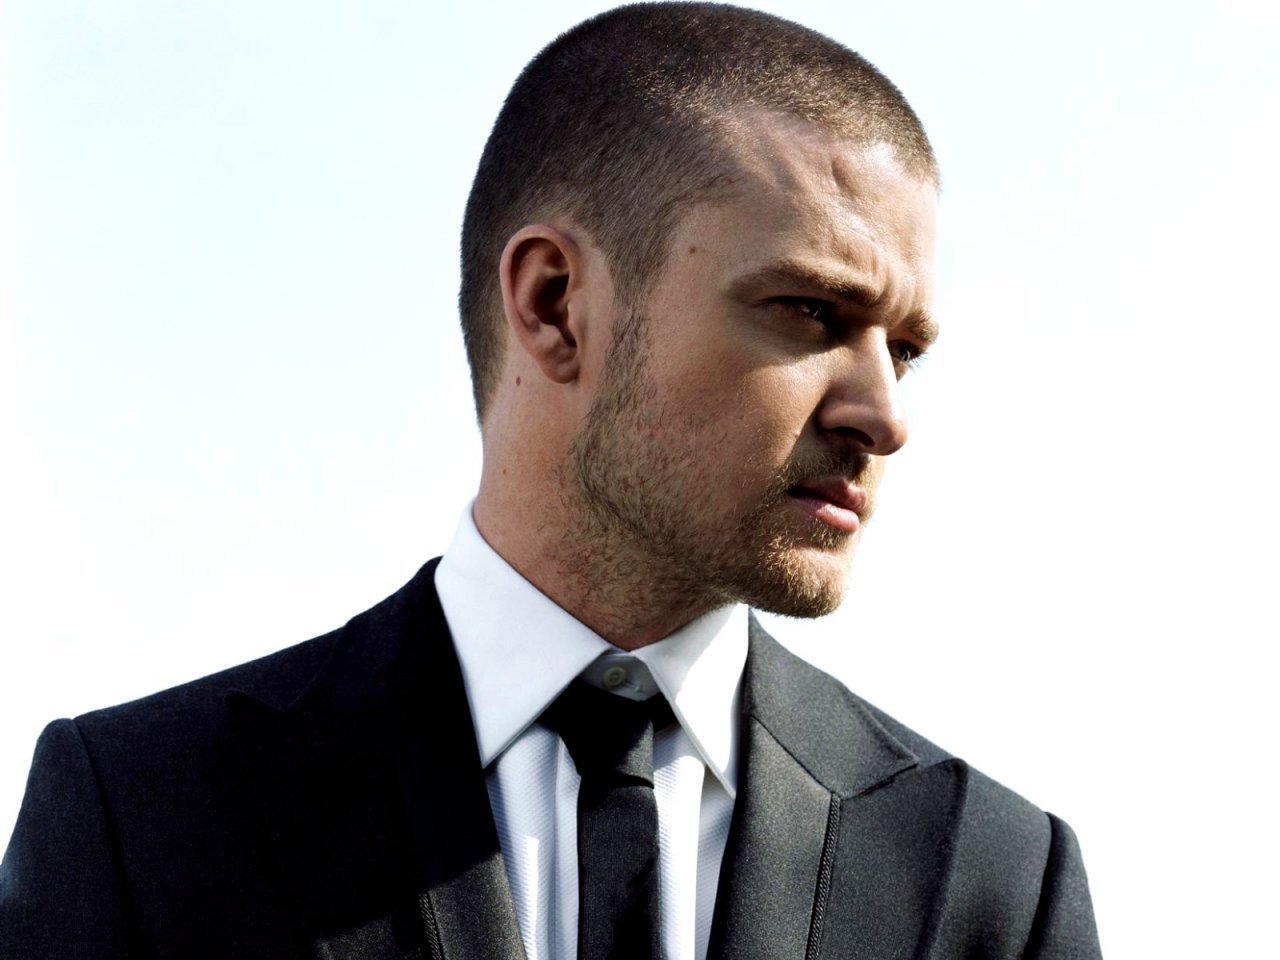 Justin Timberlake Wallpapers HD Justin Timberlake